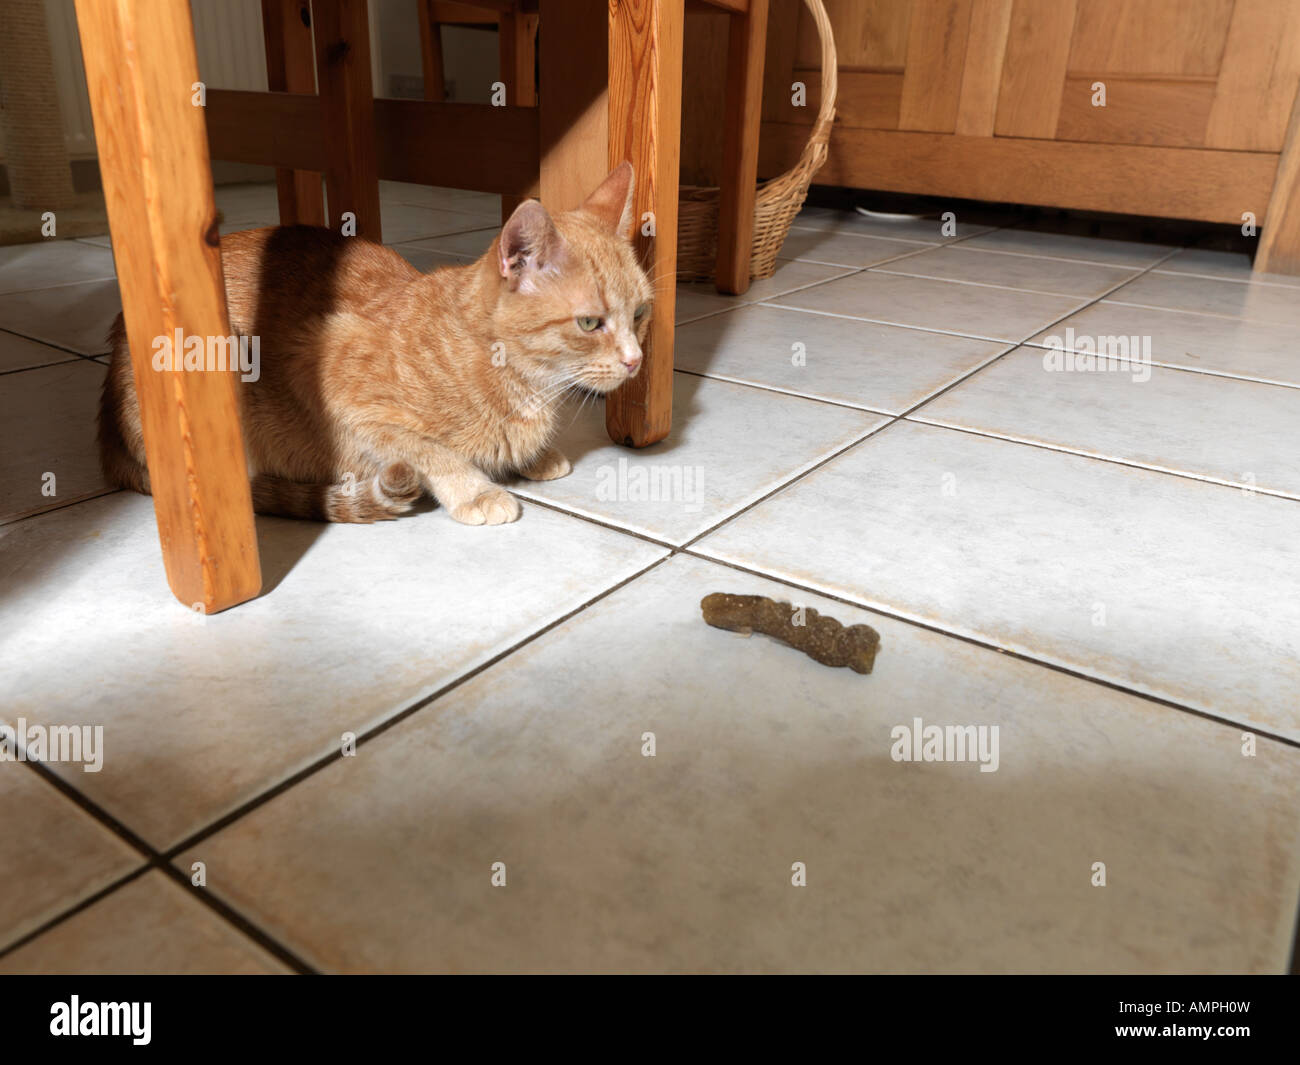 B 51088 Cat Embarassed by House Soiling - Stock Image